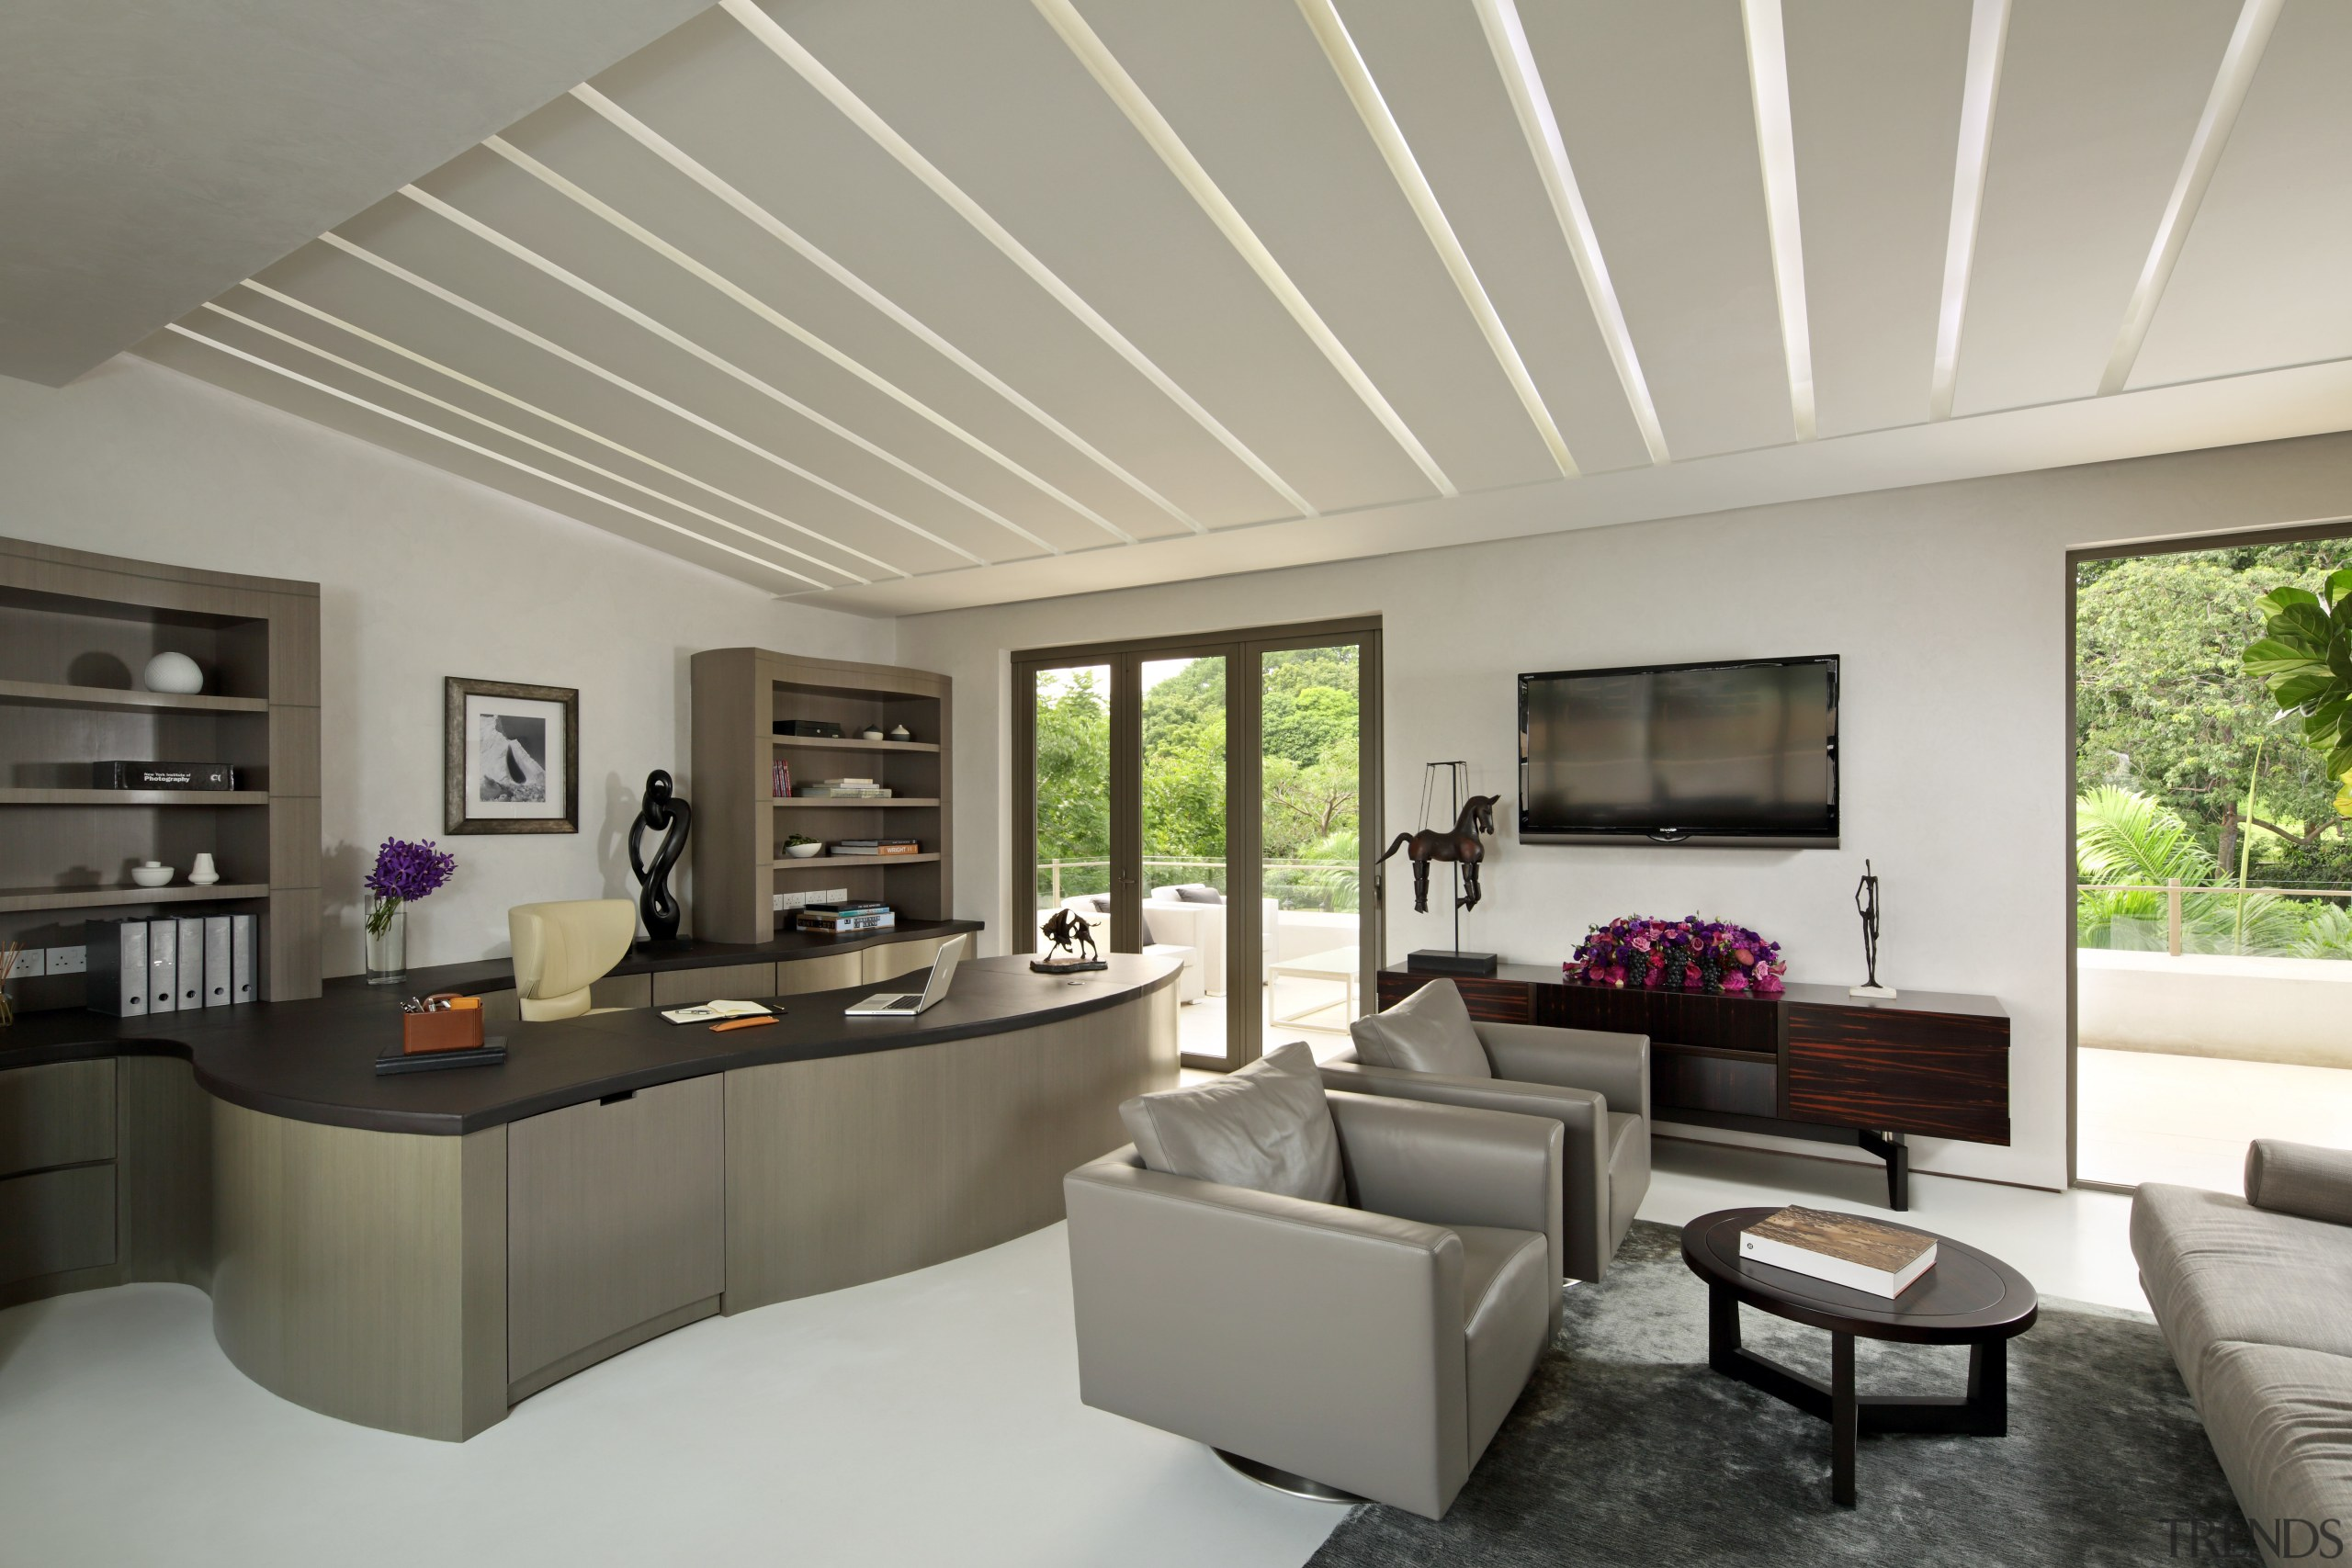 The feature ceiling grooves in this study conceal architecture, ceiling, daylighting, estate, home, house, interior design, living room, property, real estate, window, gray